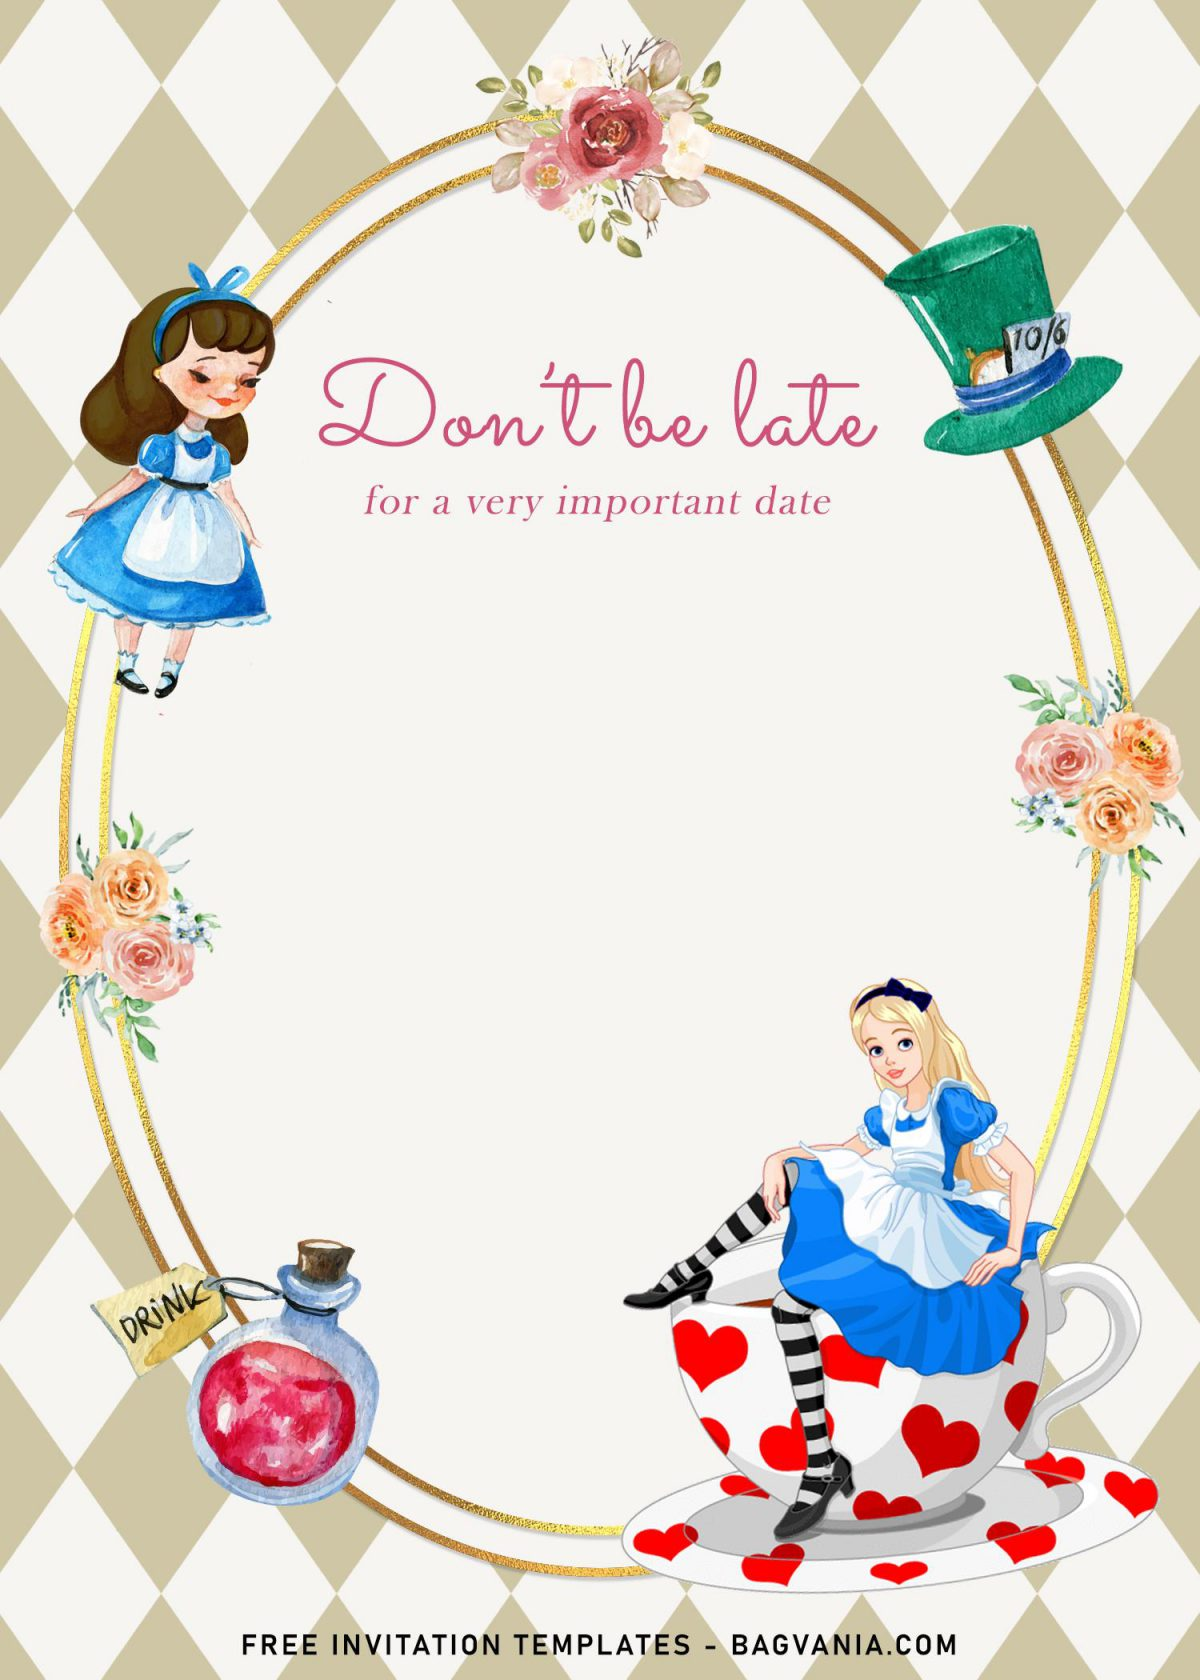 8+ Vintage Alice In Wonderland Birthday Invitation Templates and has cute Alice sitting on a cup